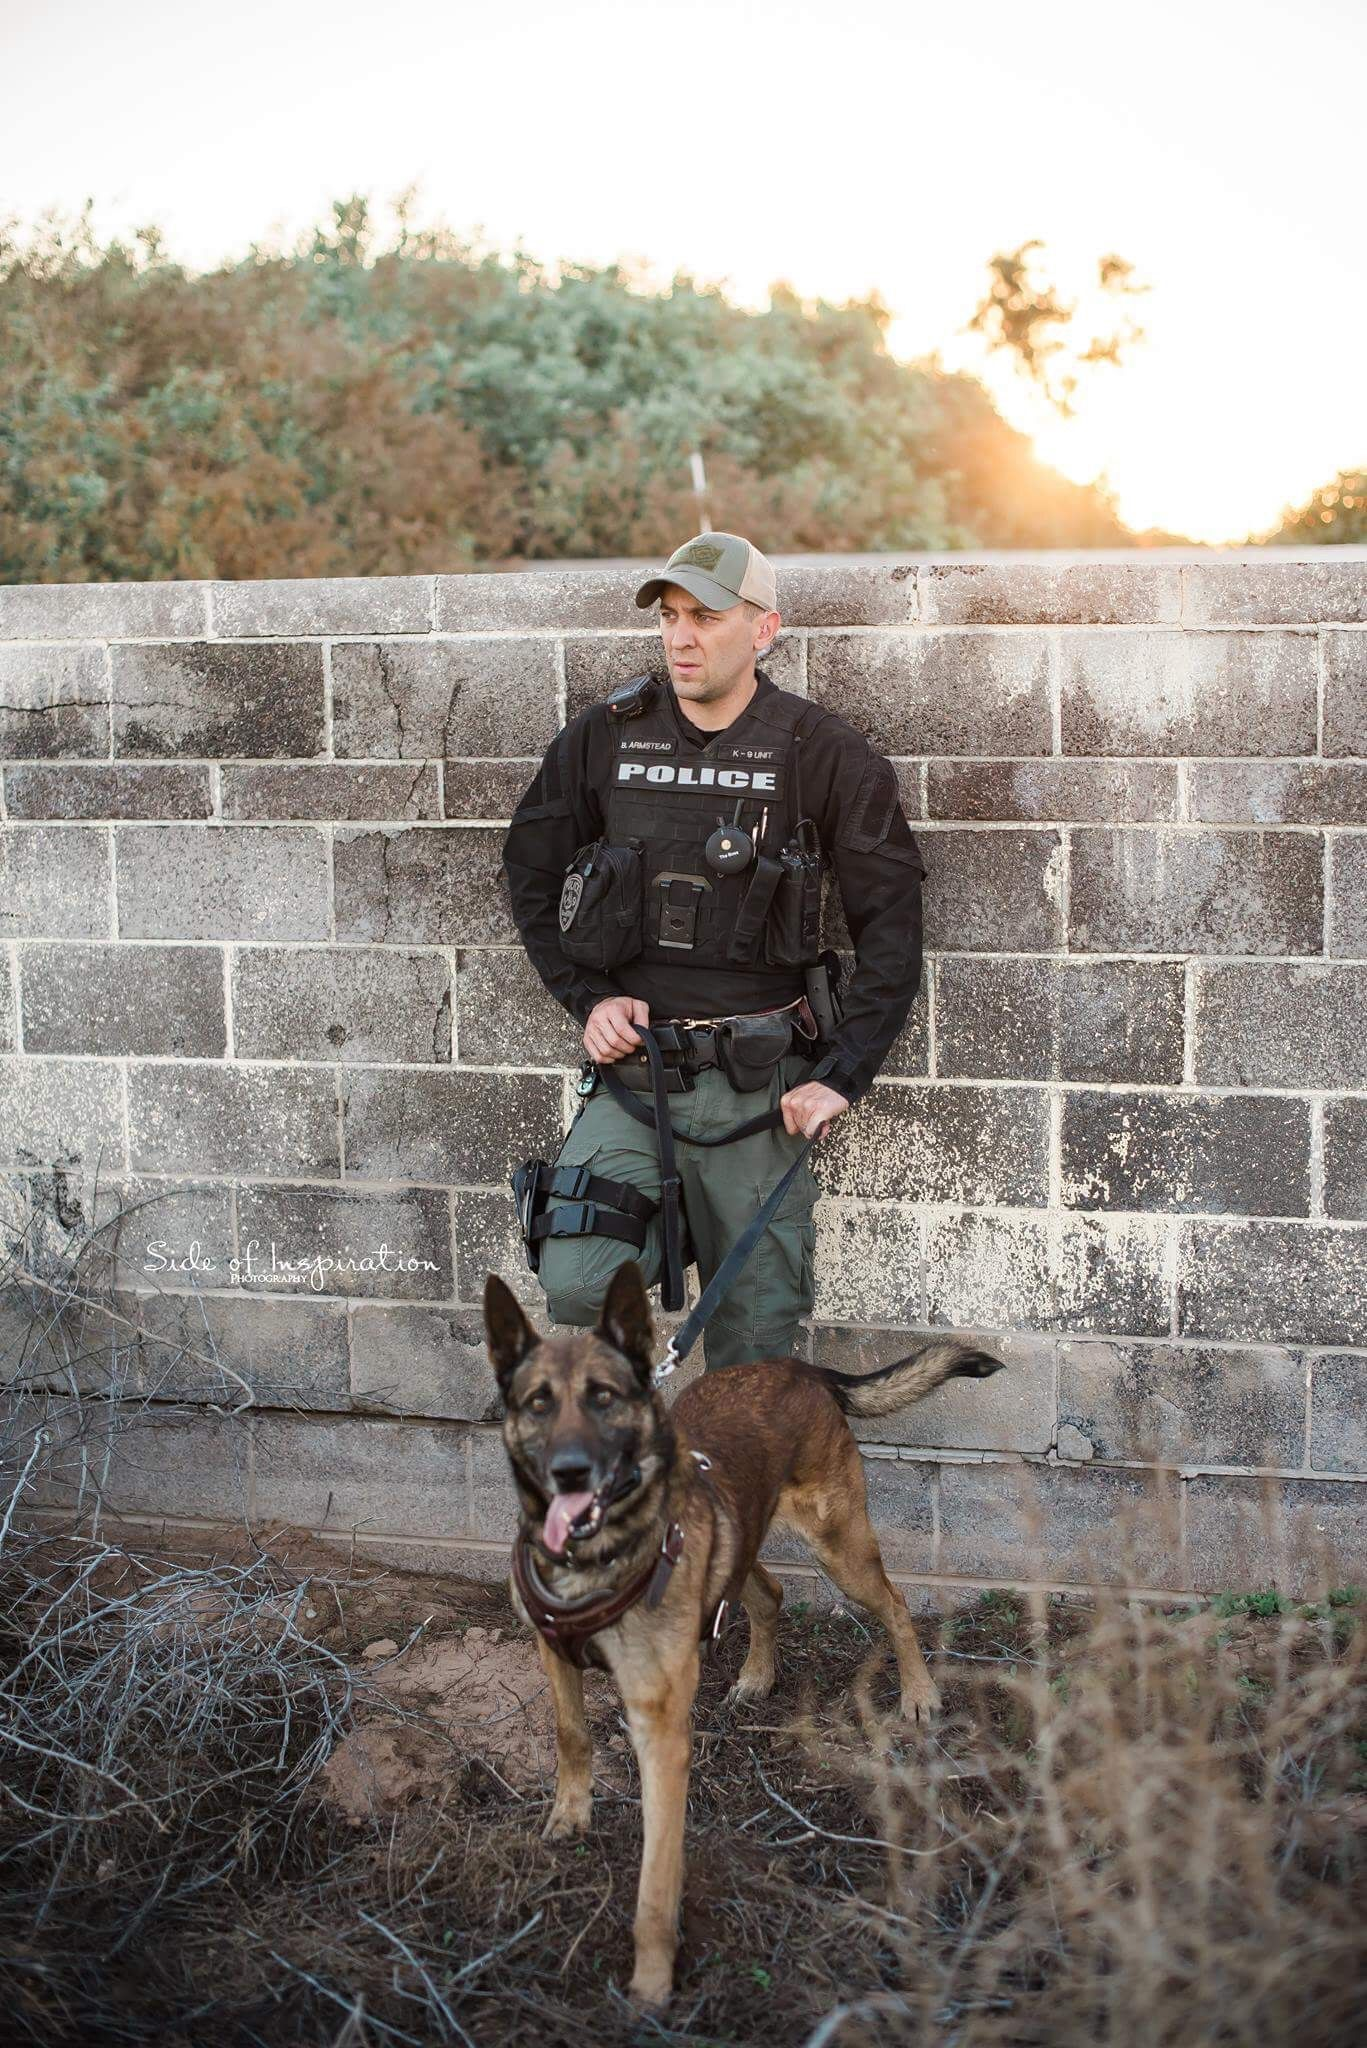 Police K9 And Handler Photo Photography Inspiration Photography Police K9